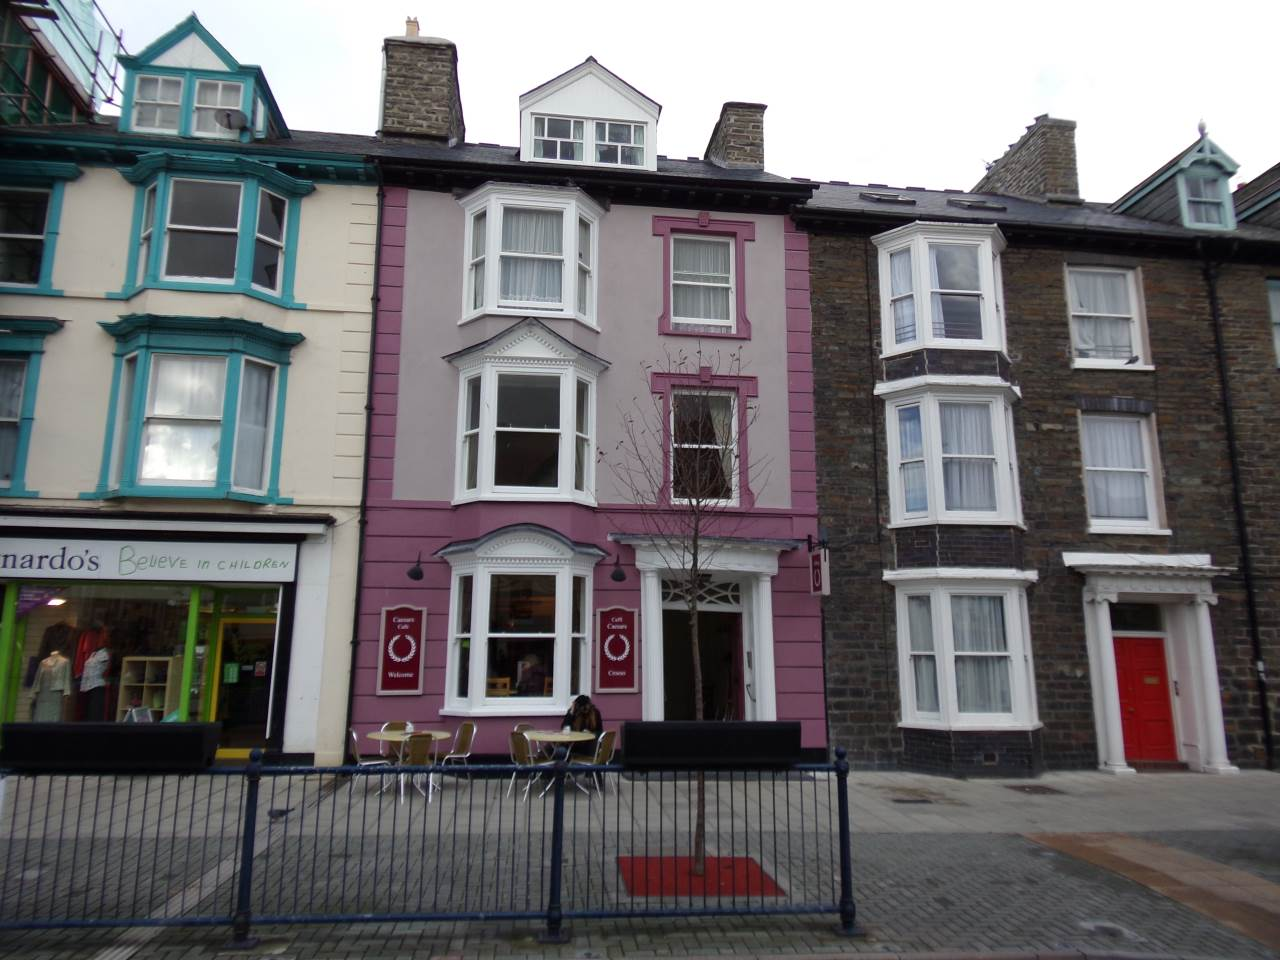 1 bed flat to rent in Aberystwyth, Ceredigion 0